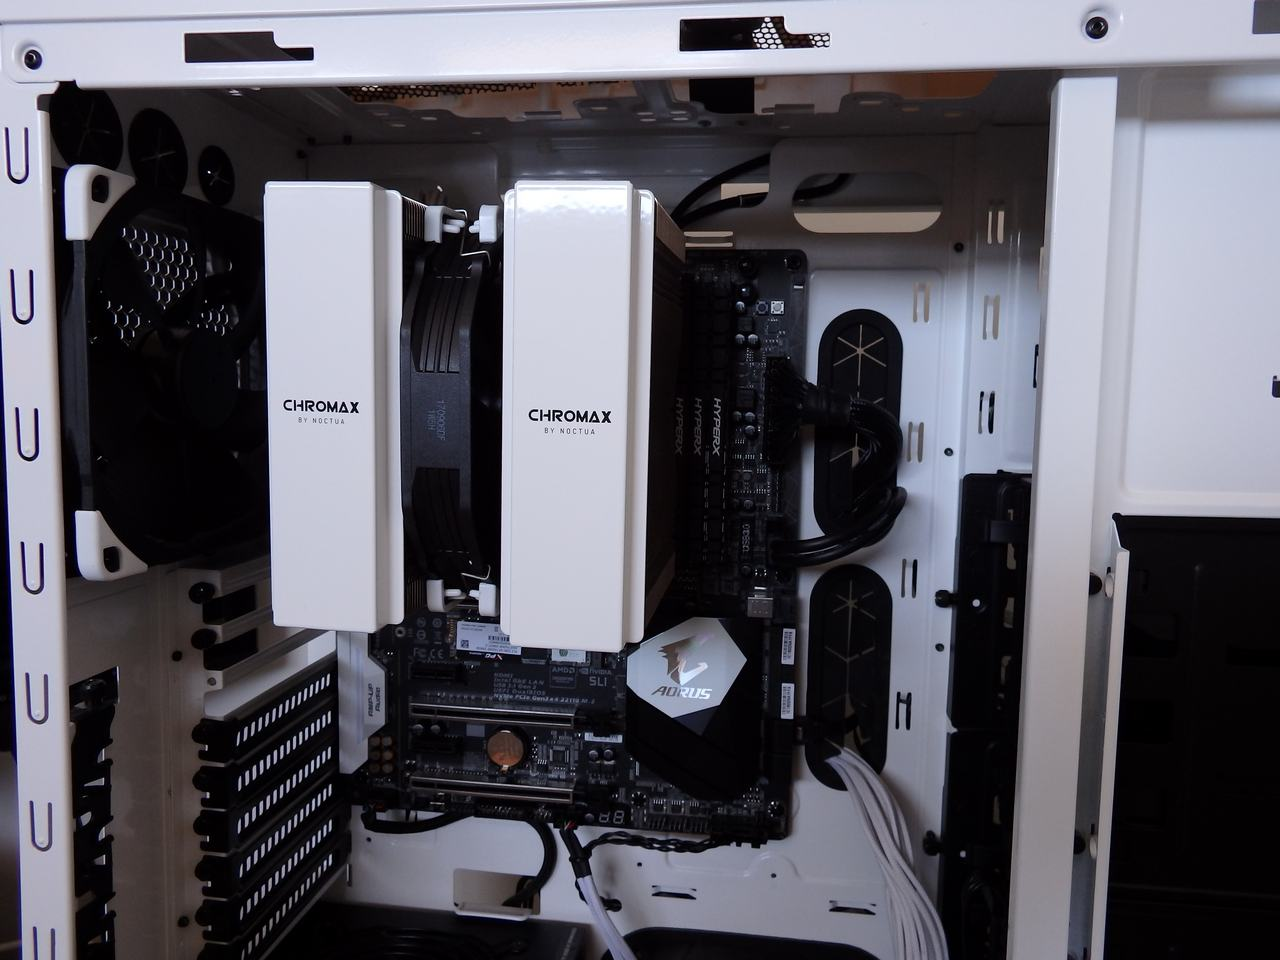 hardware_cooling_noctua_chromax_140mm17